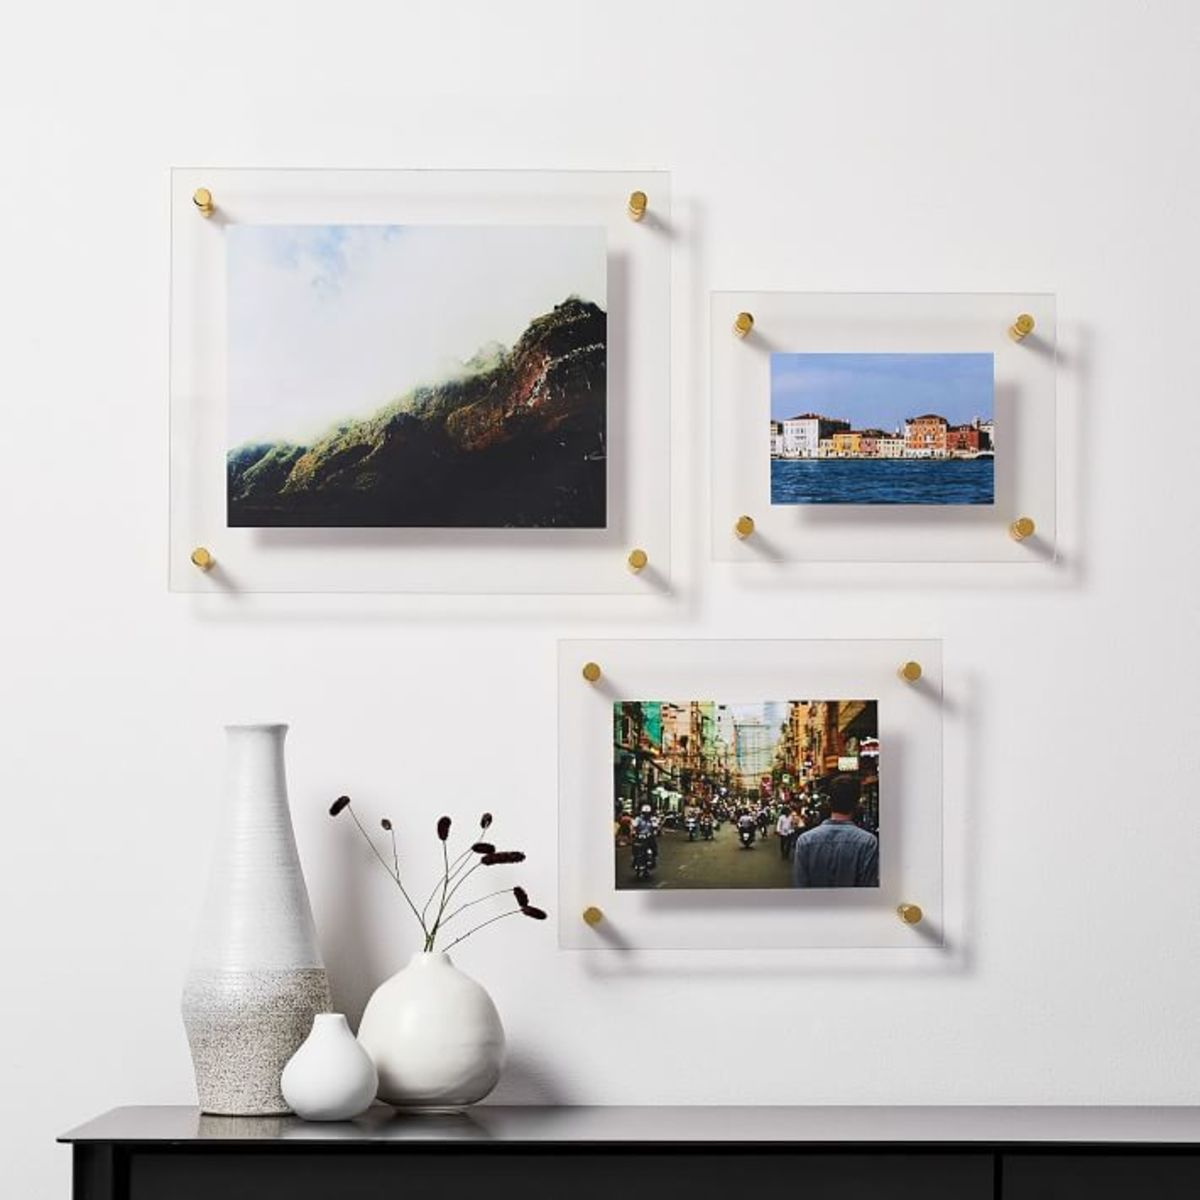 Floating acrylic frames look light and airy in  a modern room.